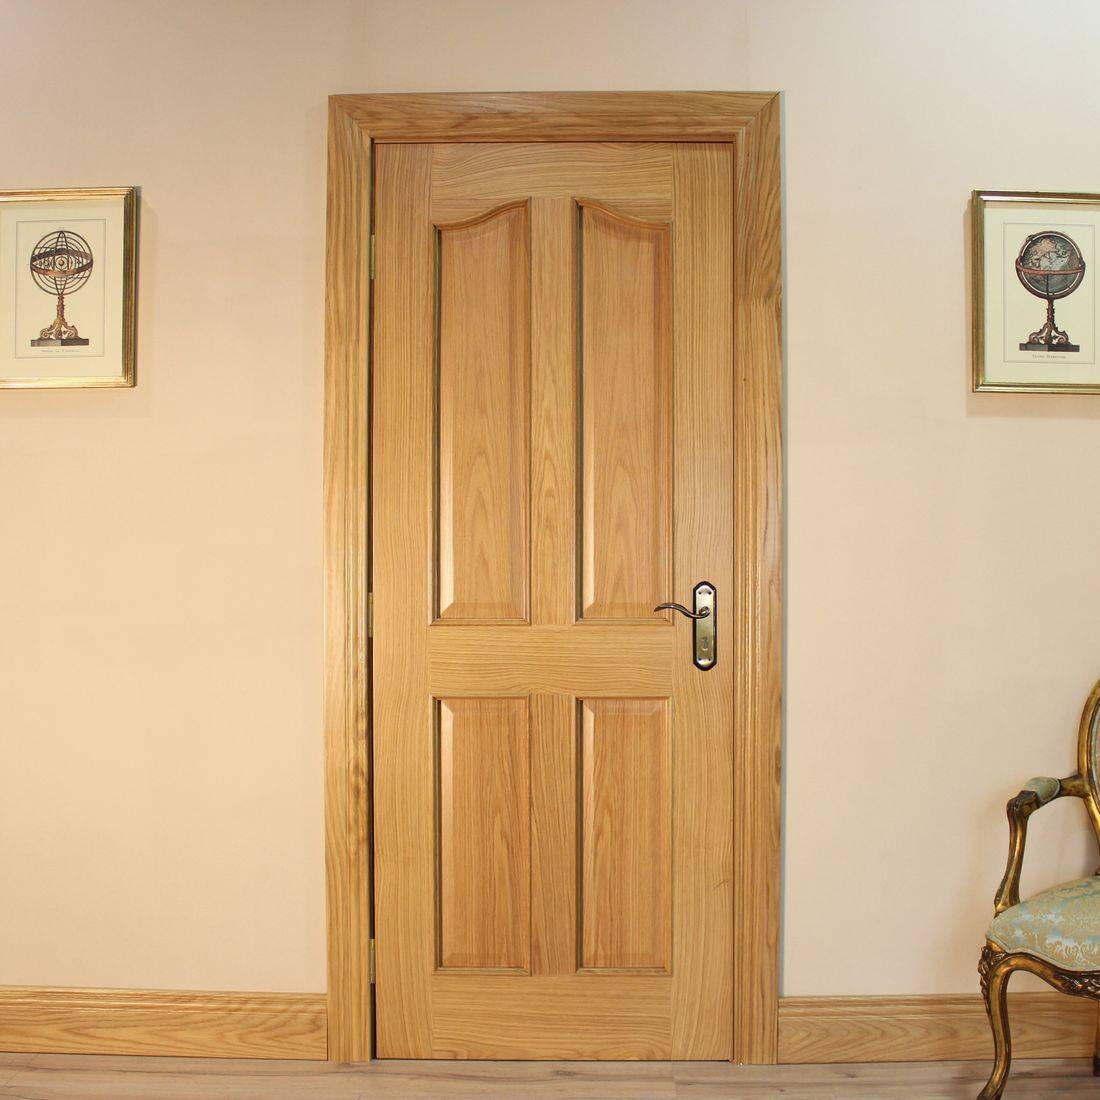 Seadec Belfast Oak 4 Panel Curved